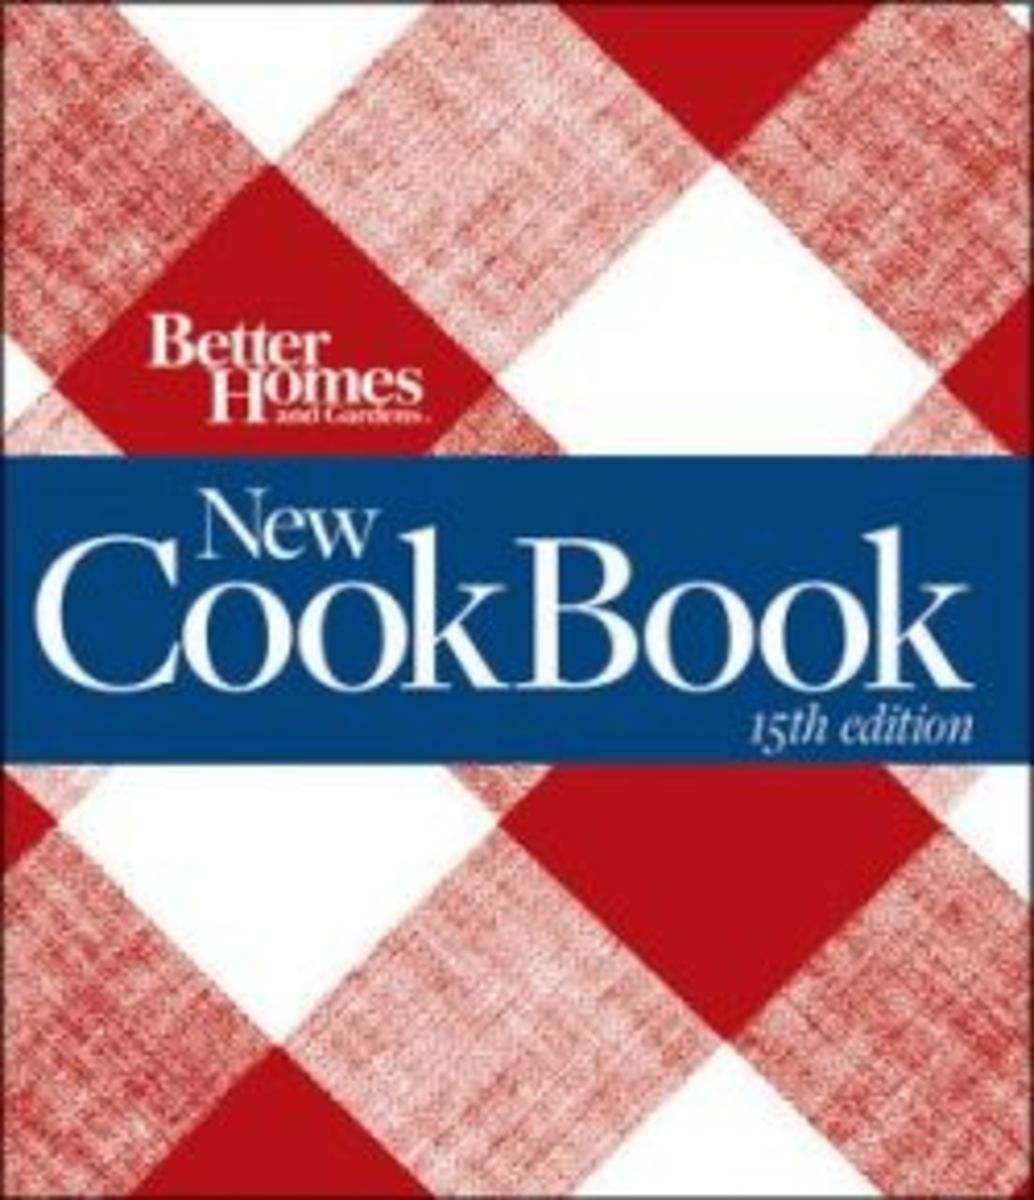 Better Homes and Gardens New Cookbook 15th Edition